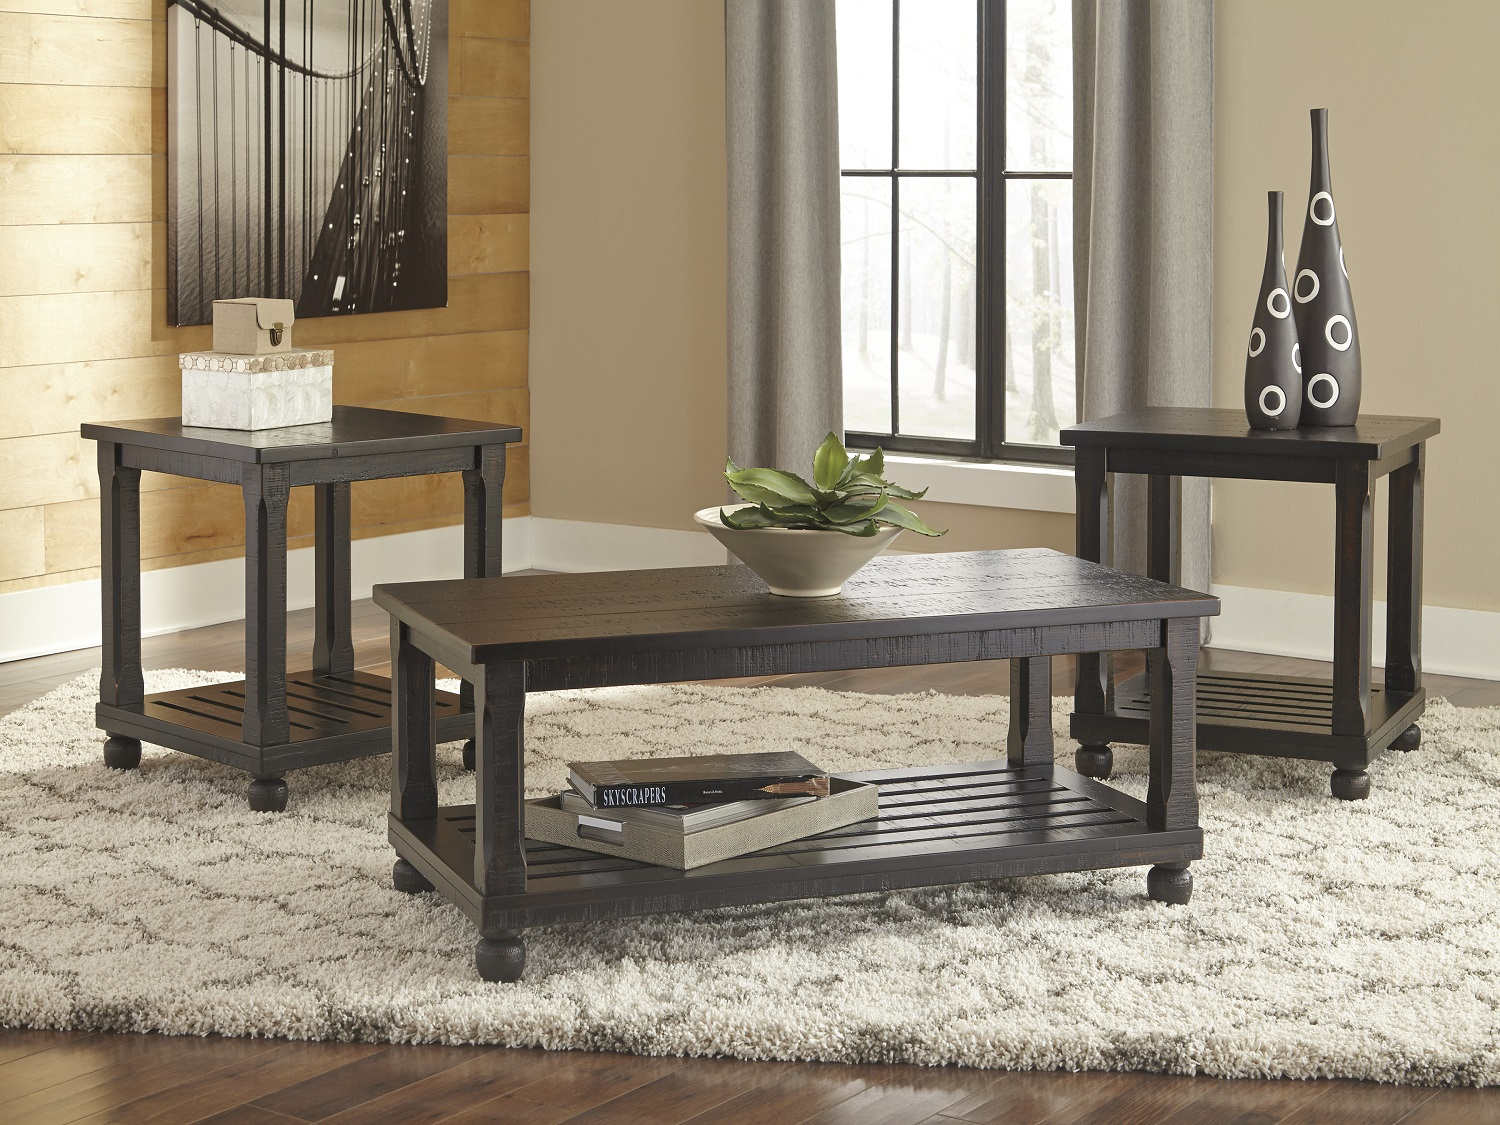 Mallacar 3PC Table Set, T145-13, Coffee Table by Midha Furniture to Brampton, Mississauga, Etobicoke, Toronto, Scraborough, Caledon, Oakville, Markham, Ajax, Pickering, Oshawa, Richmondhill, Kitchener, Hamilton and GTA area